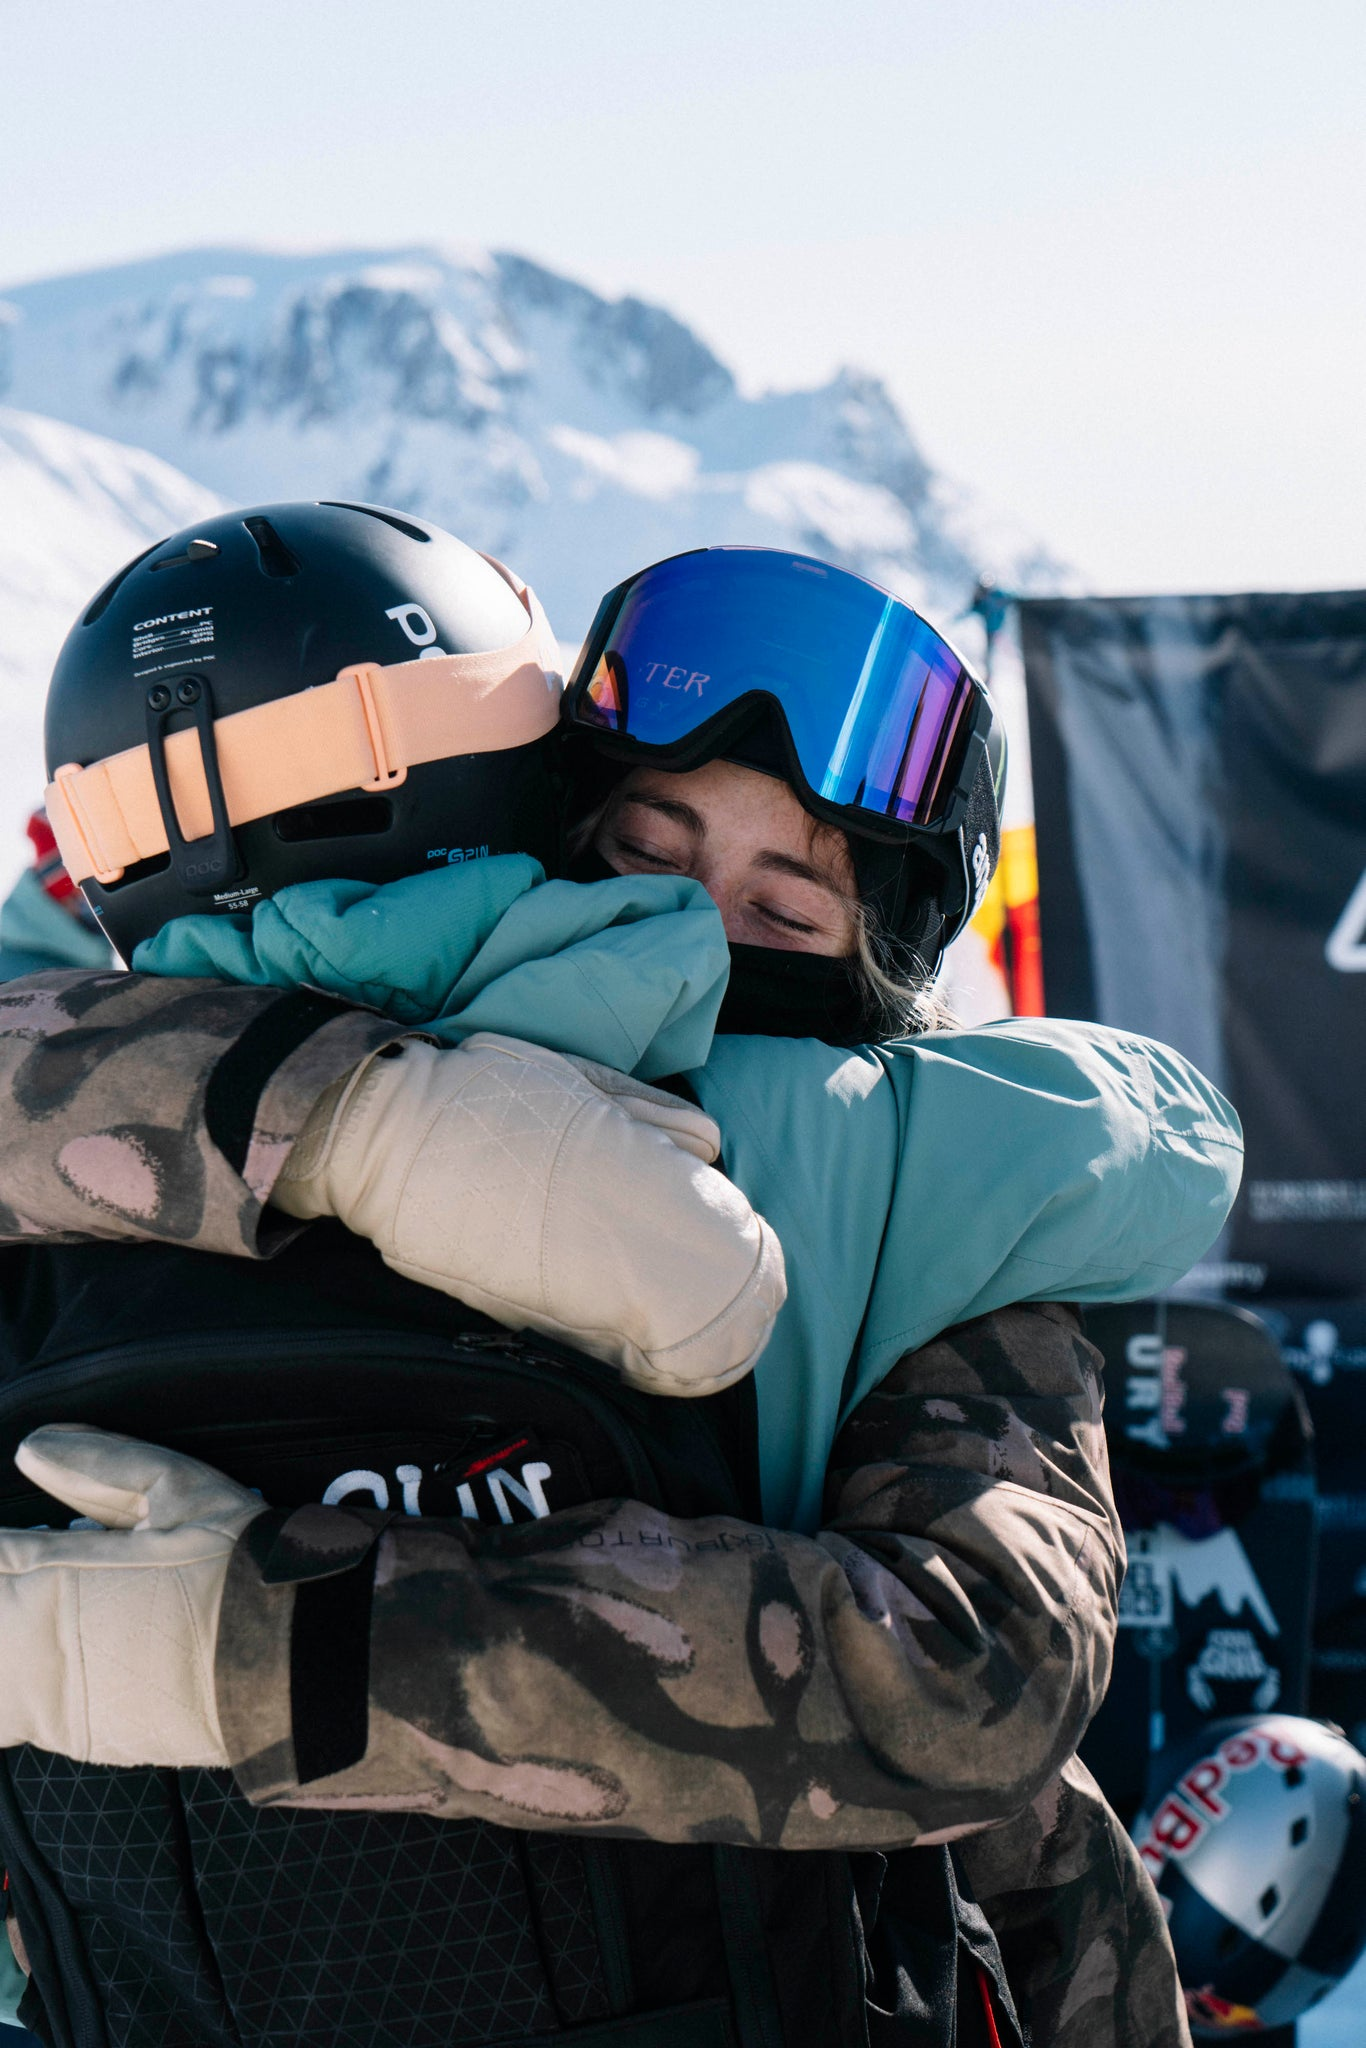 Zoe and Robin // p: Dean Blotto Gray/Natural Selection Tour/Red Bull Content Pool